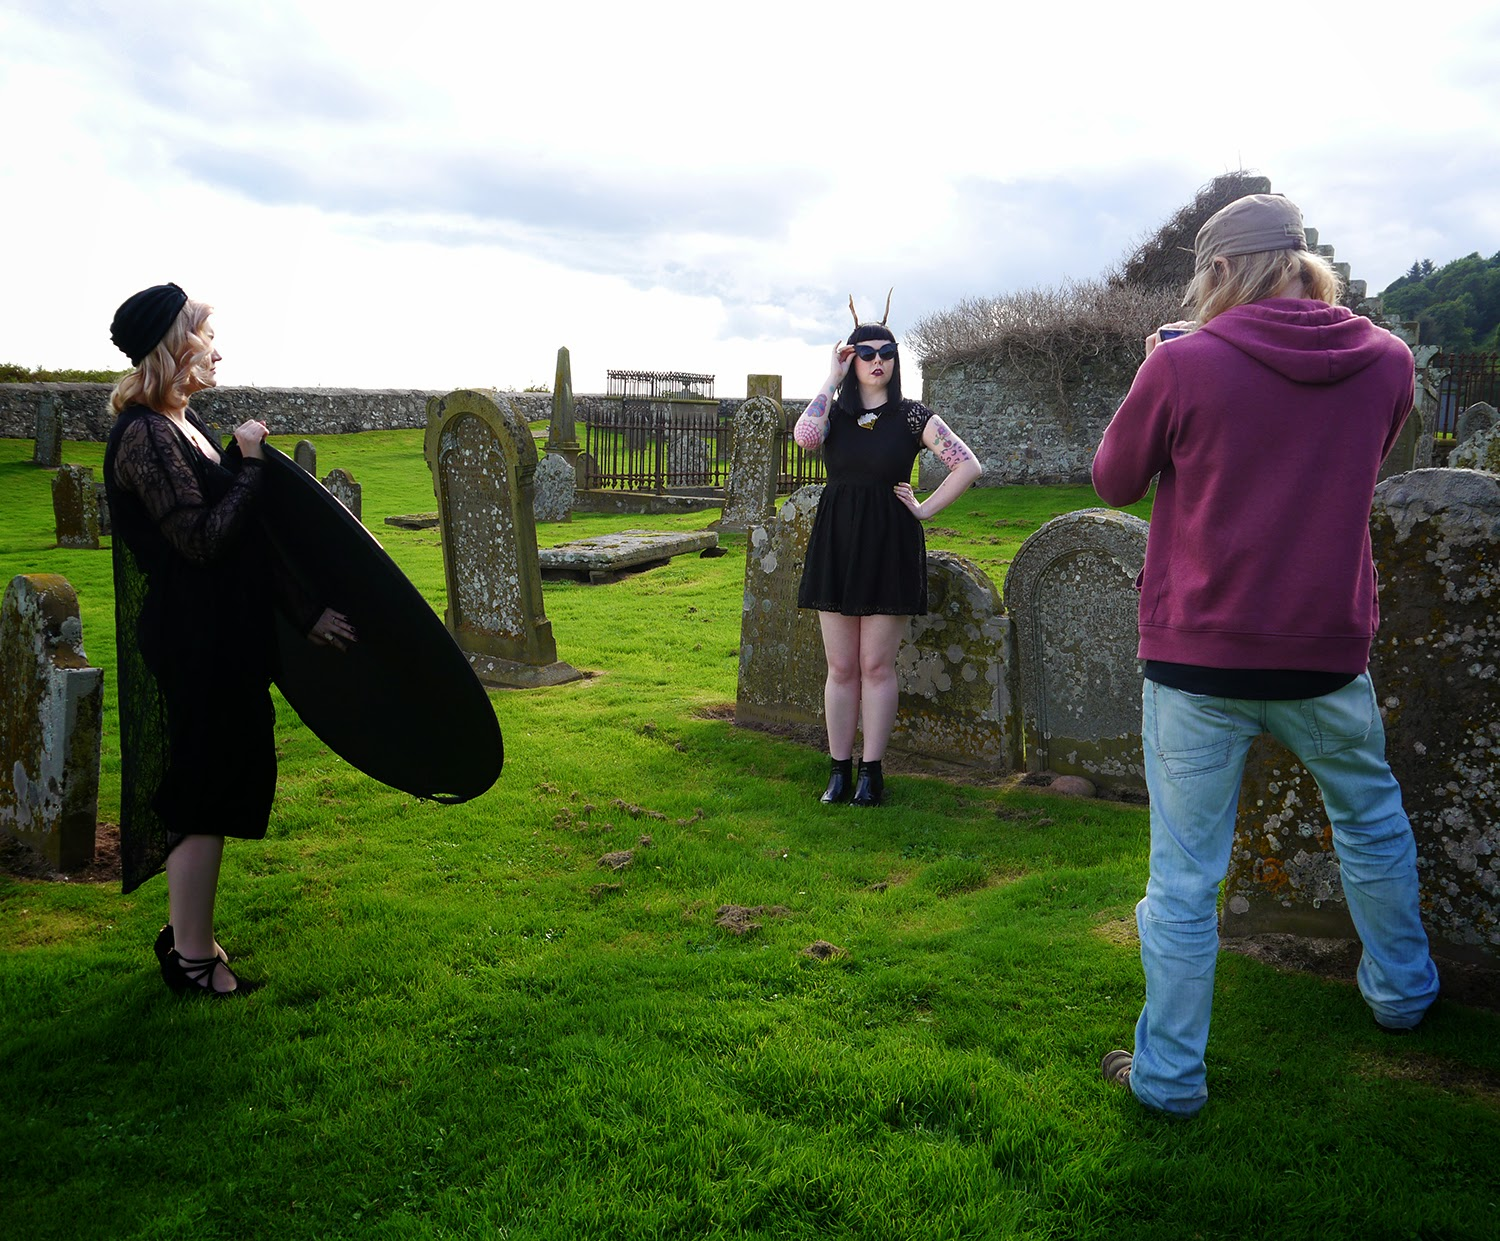 Halloween Girl Gang, #halloweengirlgang, witch style, Miss West End Girl, Miss Vicky Viola, Wardrobe Conversations, behind the scenes, film making, fashion film, Halloween fashion film, Scottish bloggers, Scotland